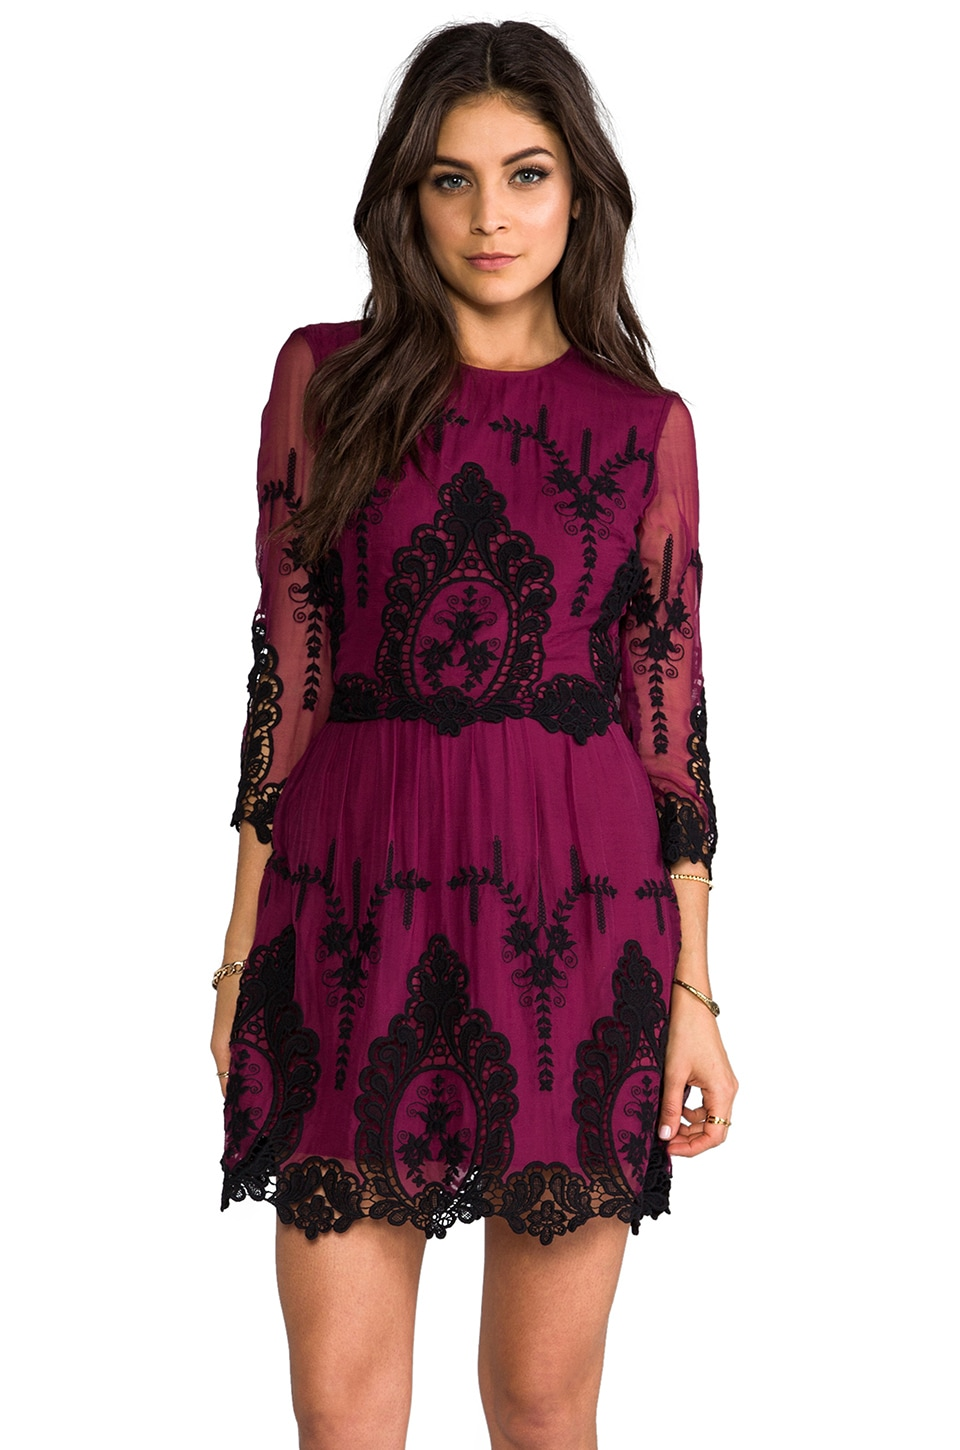 Dolce Vita Valentina Dress in Burgundy/Black